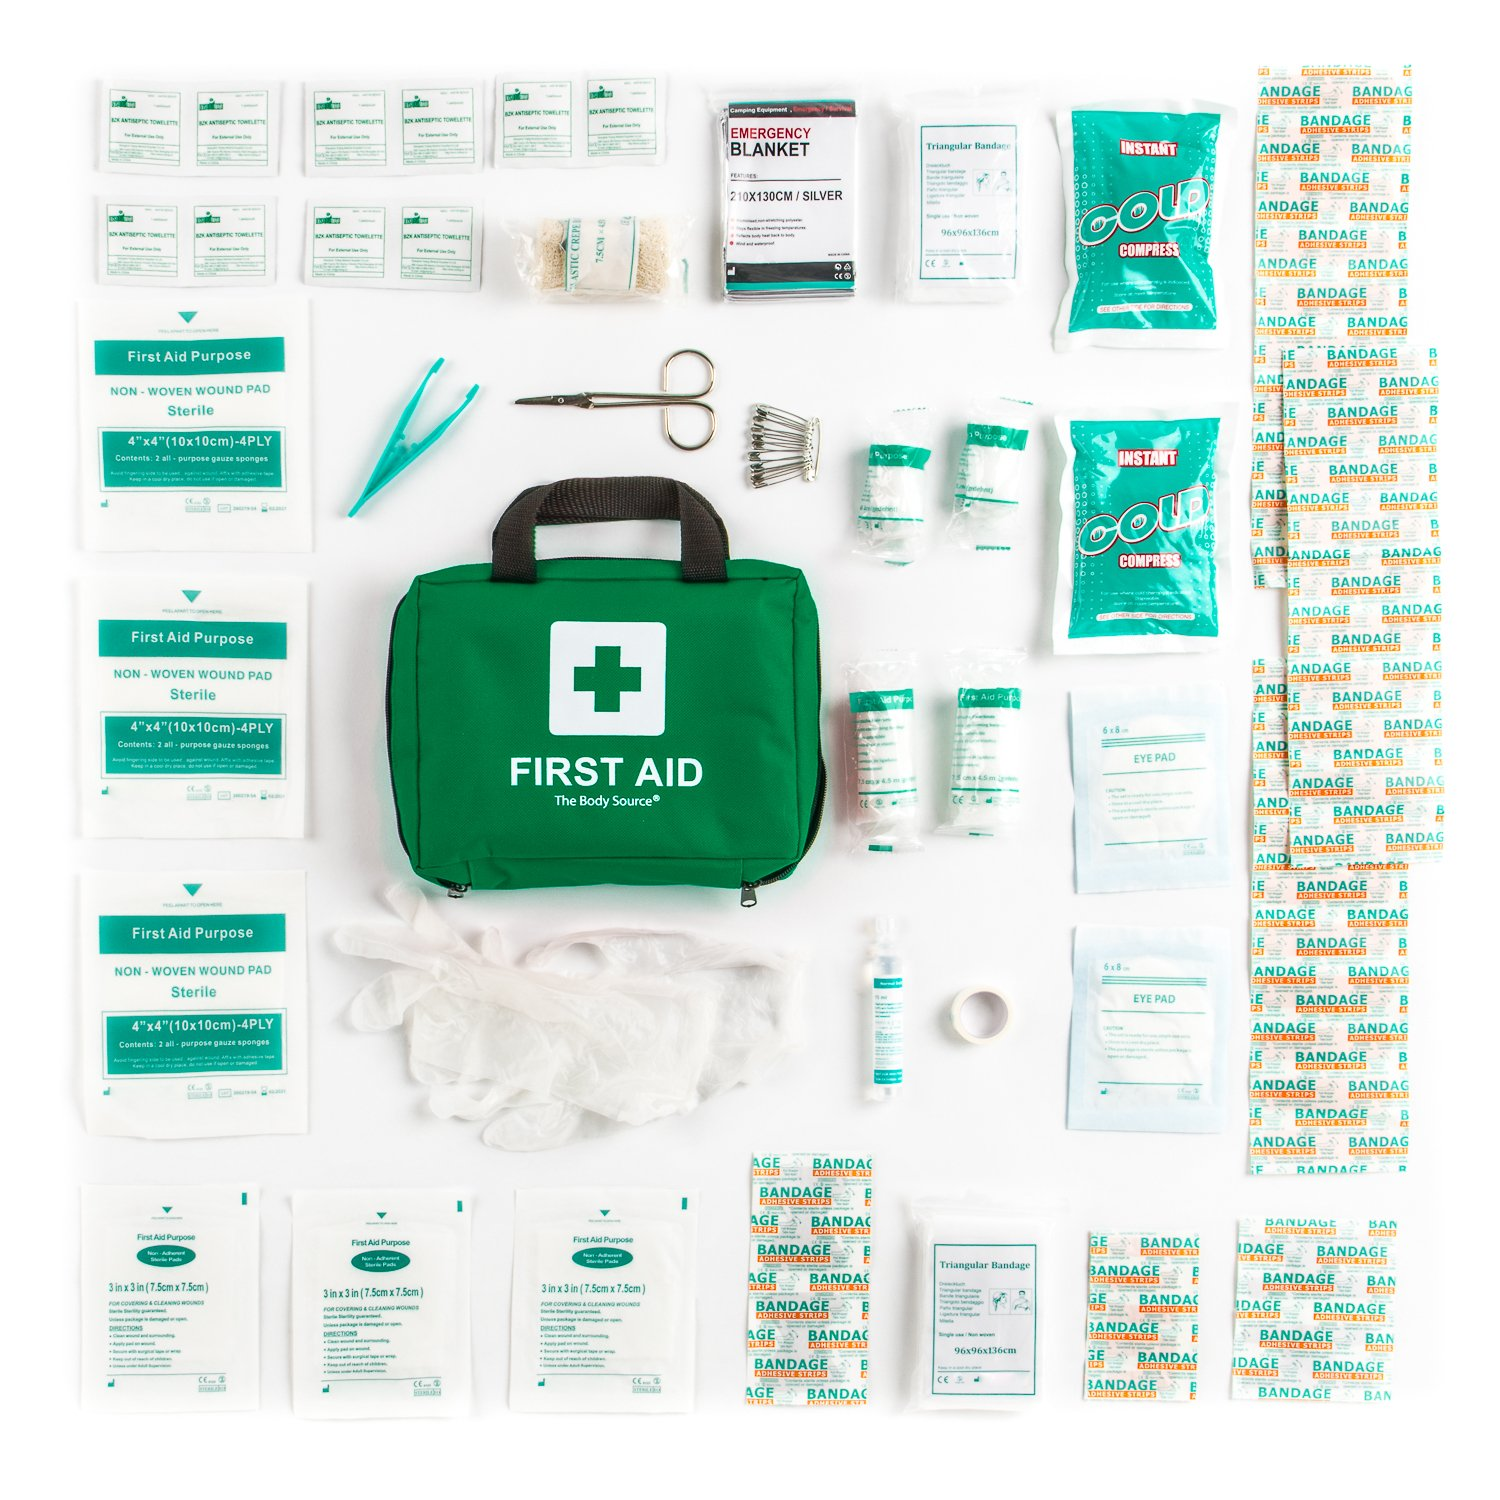 90 Pieces First Aid Kit - All-Purpose with Premium Medical Supplies and Soft Case for Home, Office, Car, Camping and Travel by The Body Source (Image #6)